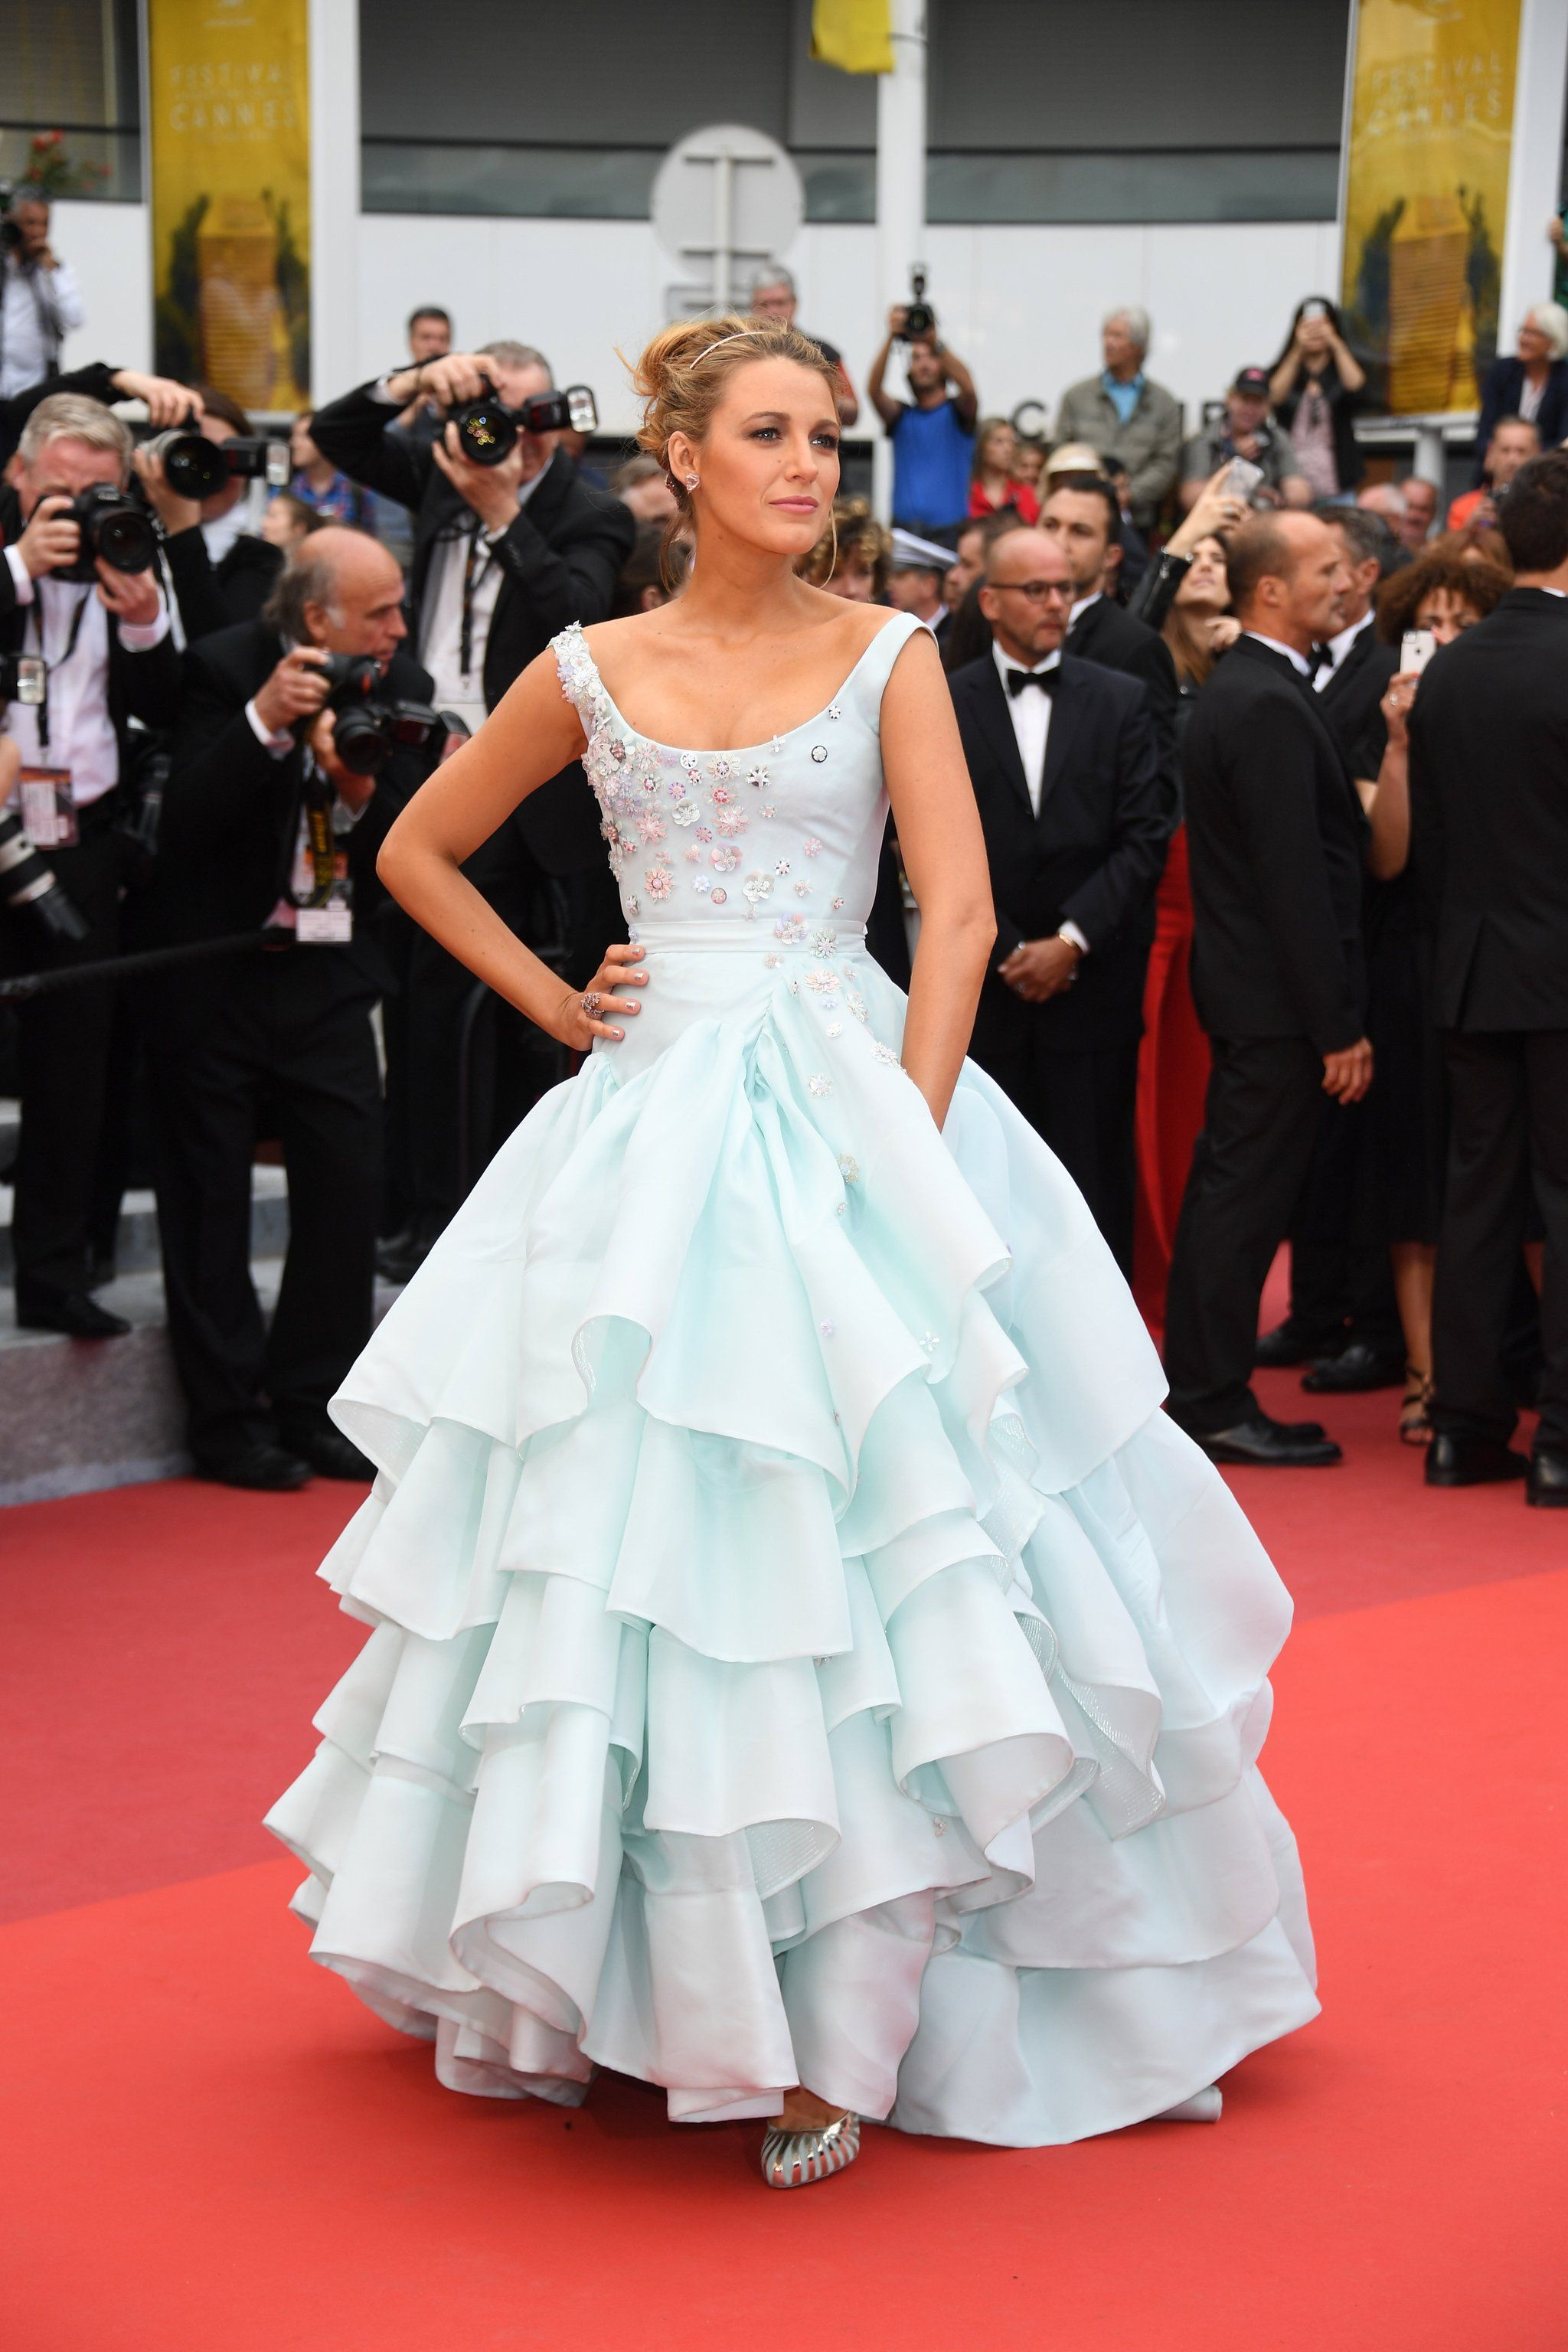 Follow Blake Lively on Her Flawless Week at the Cannes